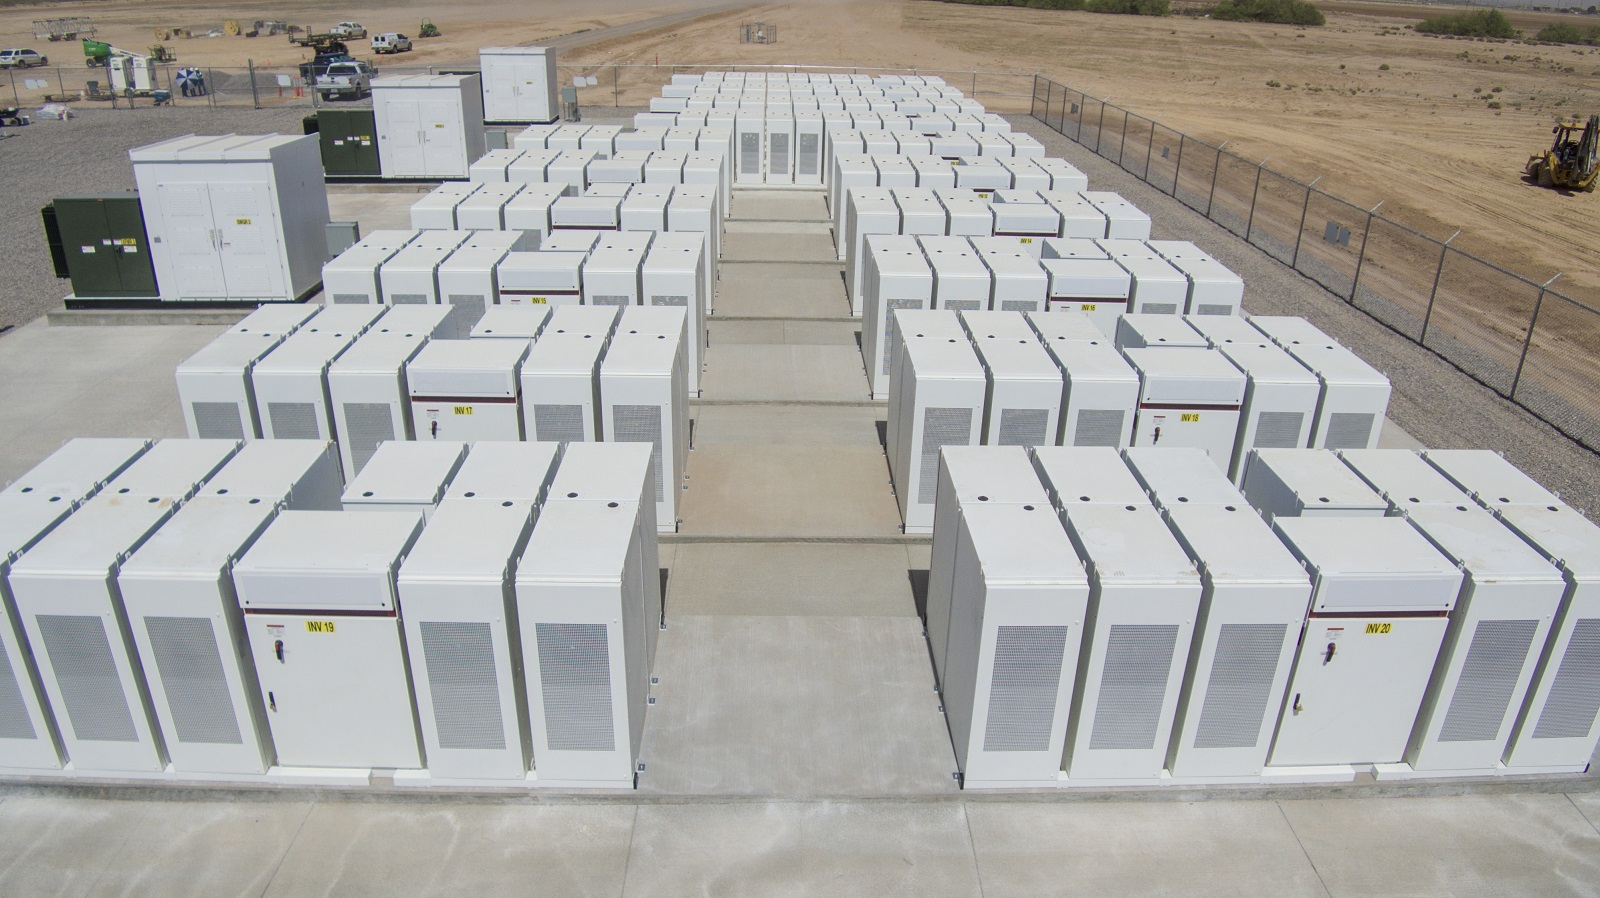 The Salt River energy storage facility in Arizona, owned by NextEra Energy. Image: NextEra Energy.